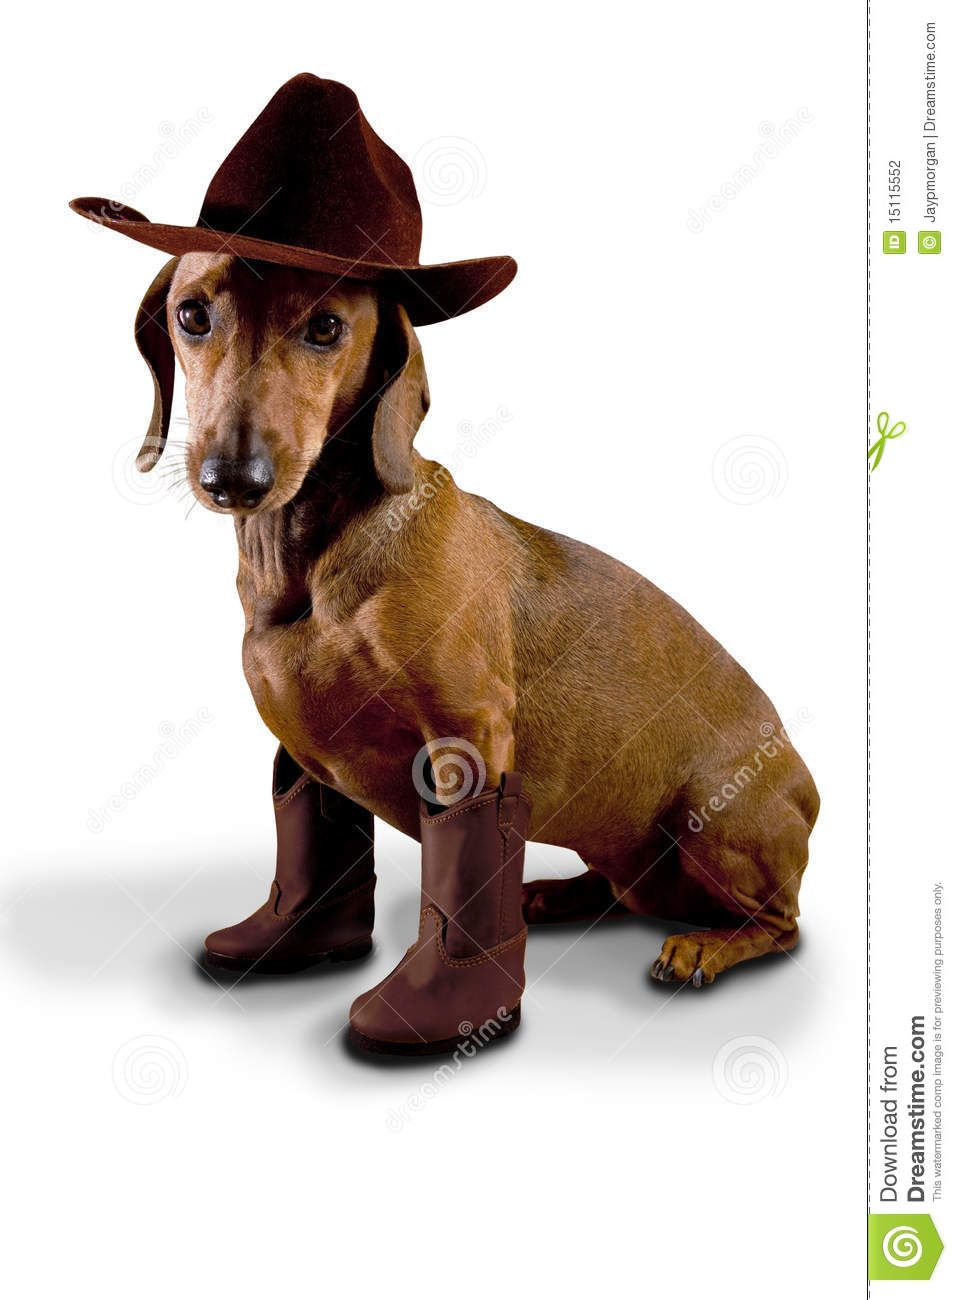 Why Did The Cowboy Adopt A Dachshund Because He Wanted A Little